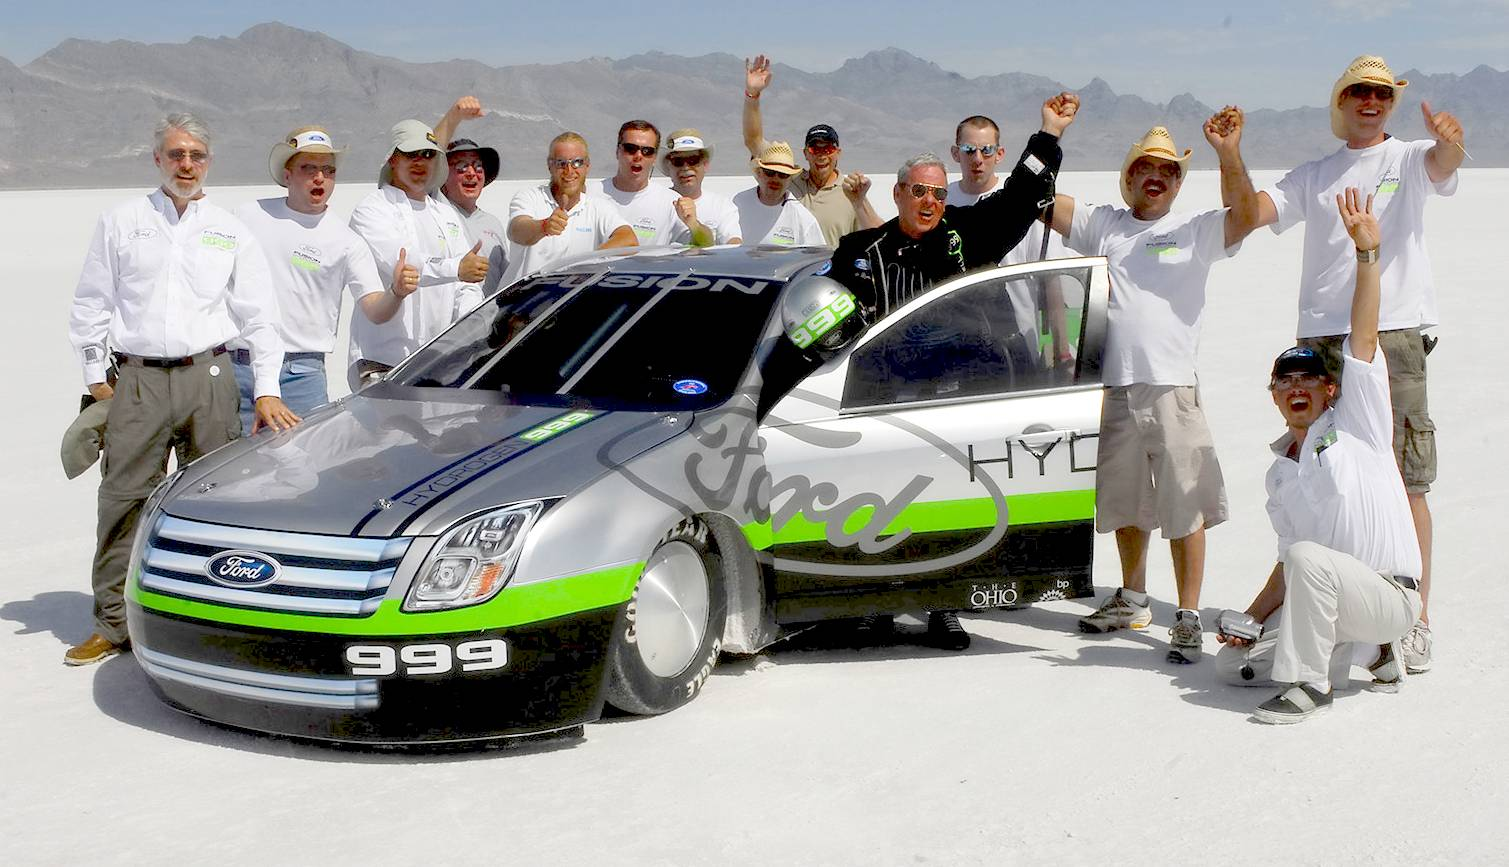 Ford's hydrogen powered Fusion fuel cell electric land speed record car